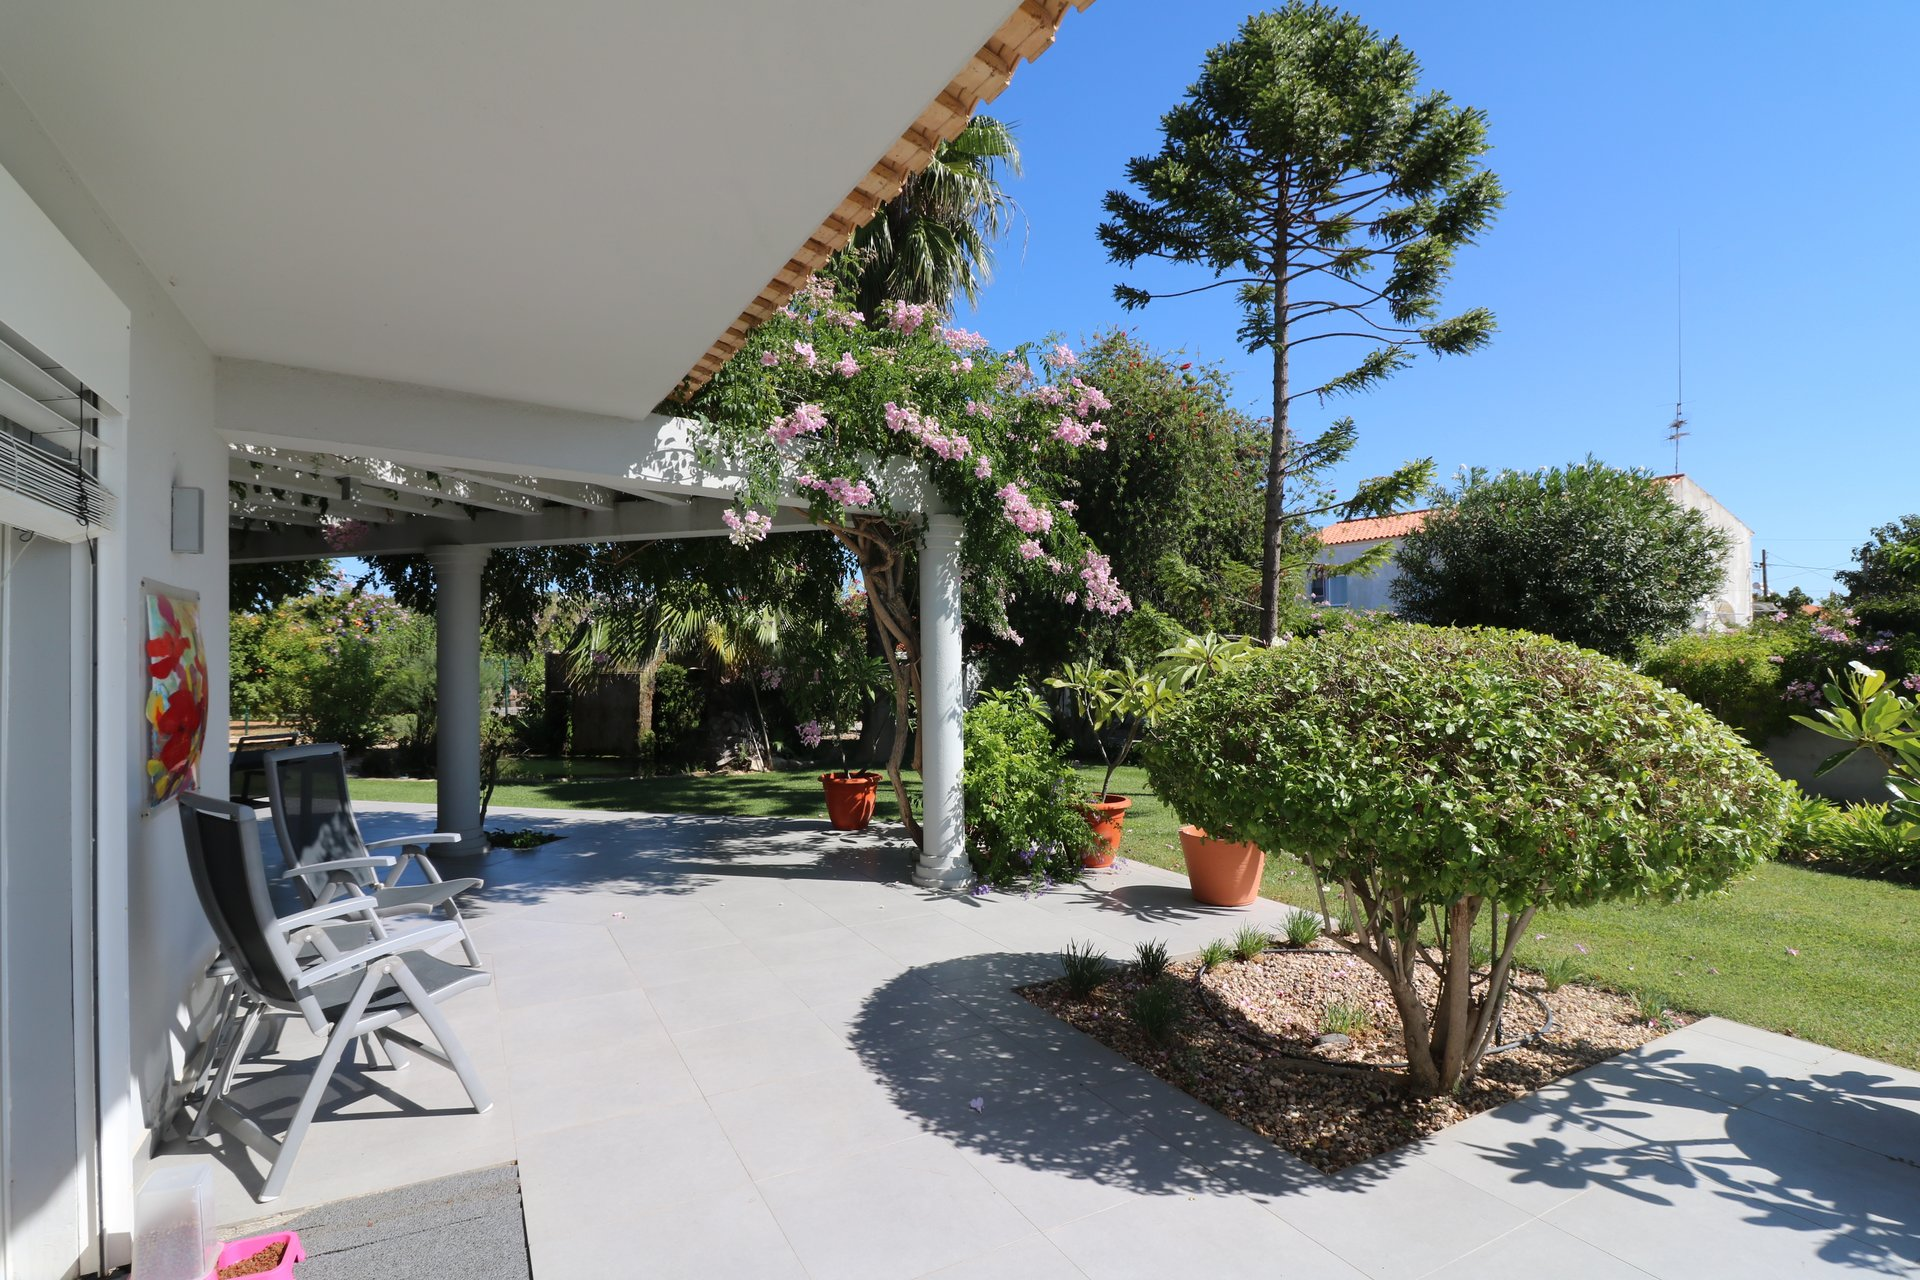 4 Bedroom Villa Almancil, Central Algarve Ref: JV10383